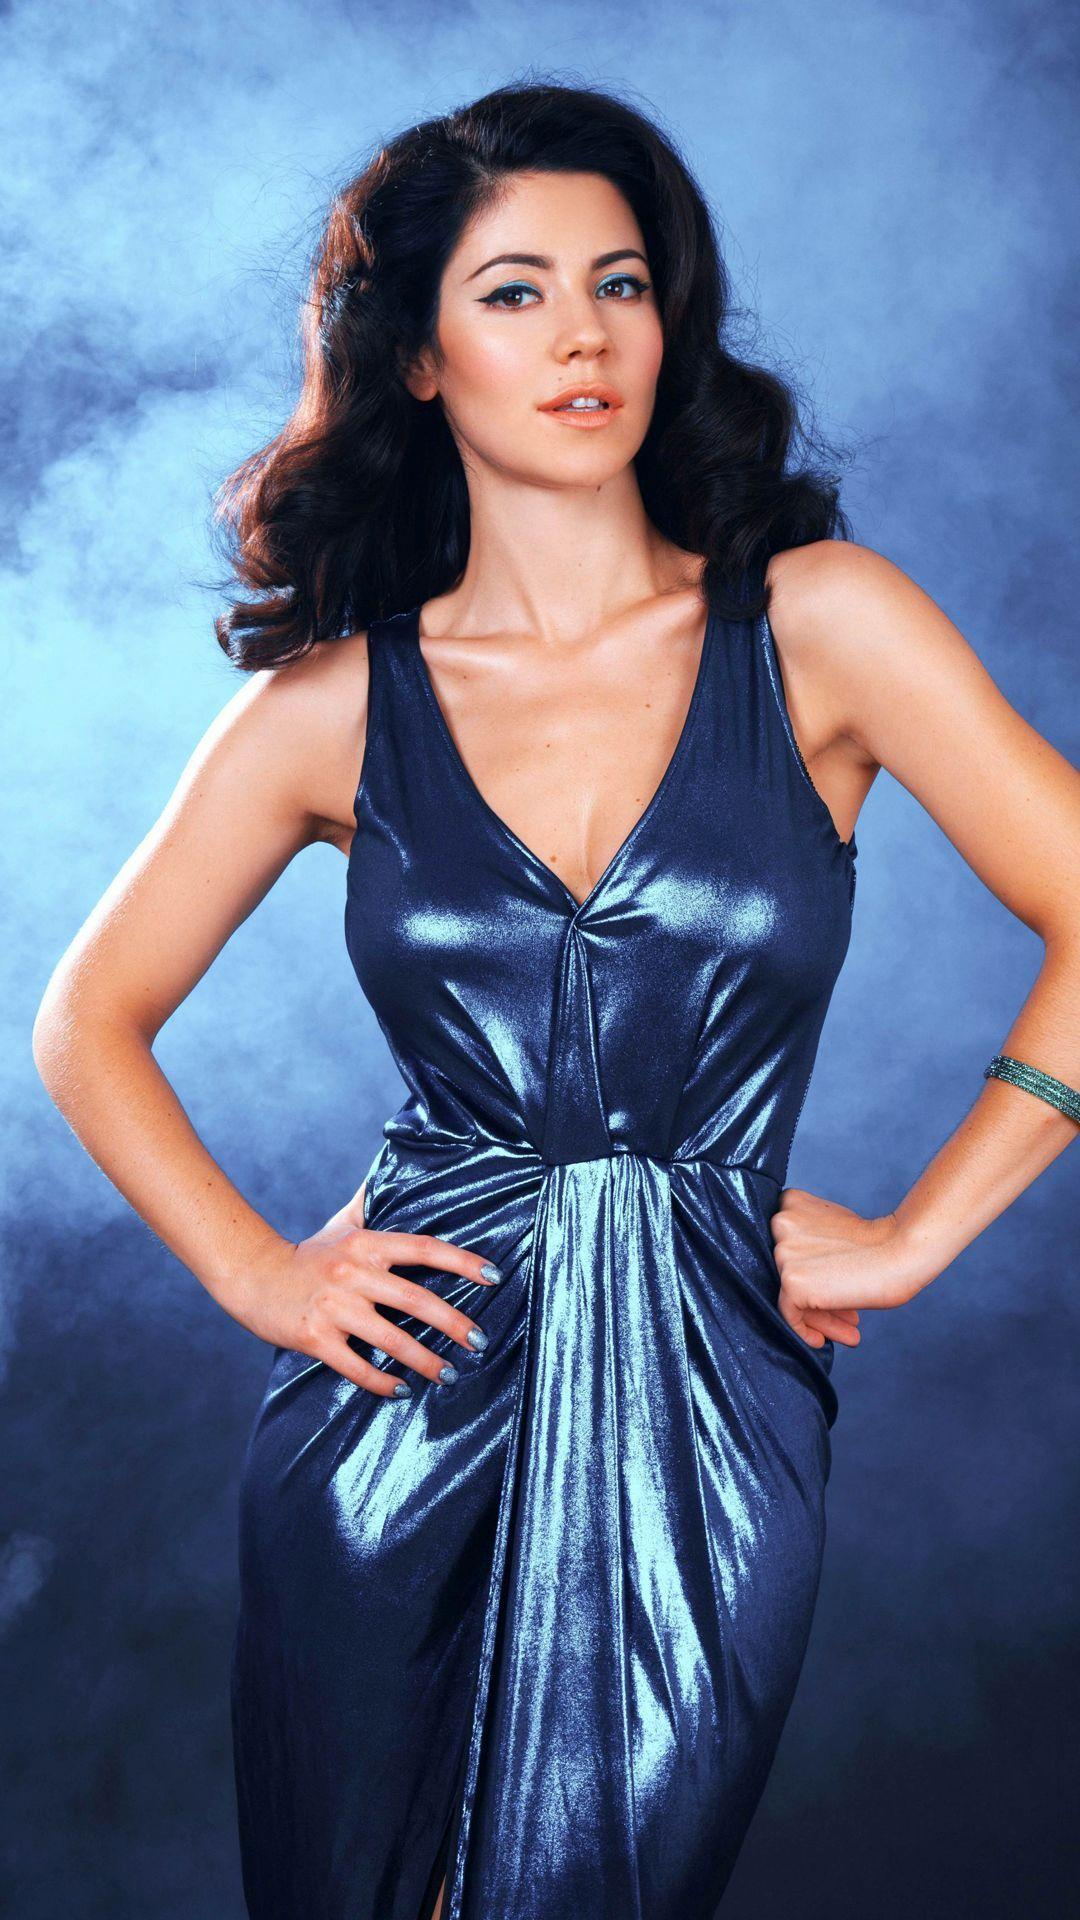 Marina and the Diamonds in a shiny long blue dress Mobile